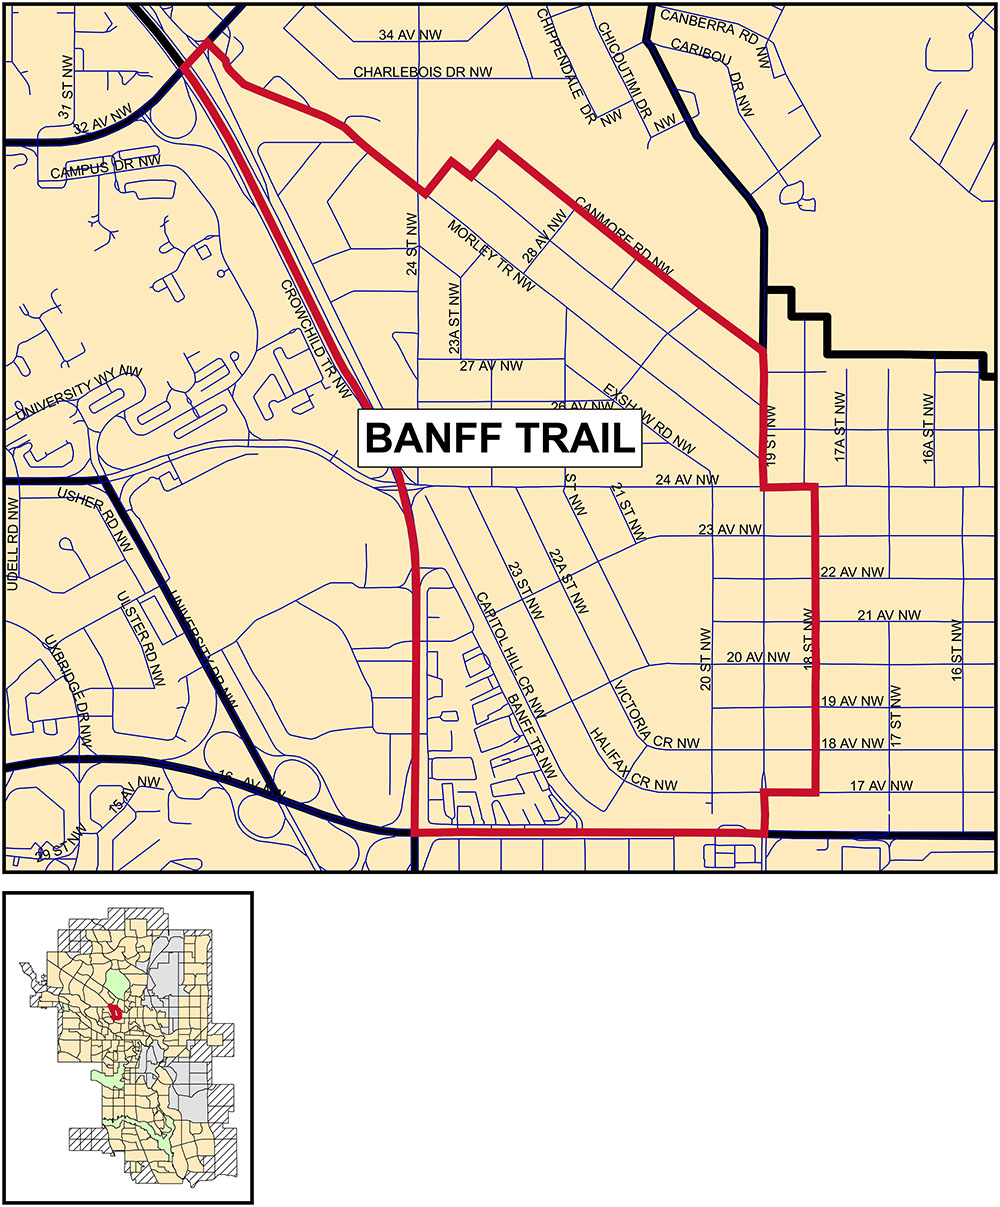 Banff Trail community profile